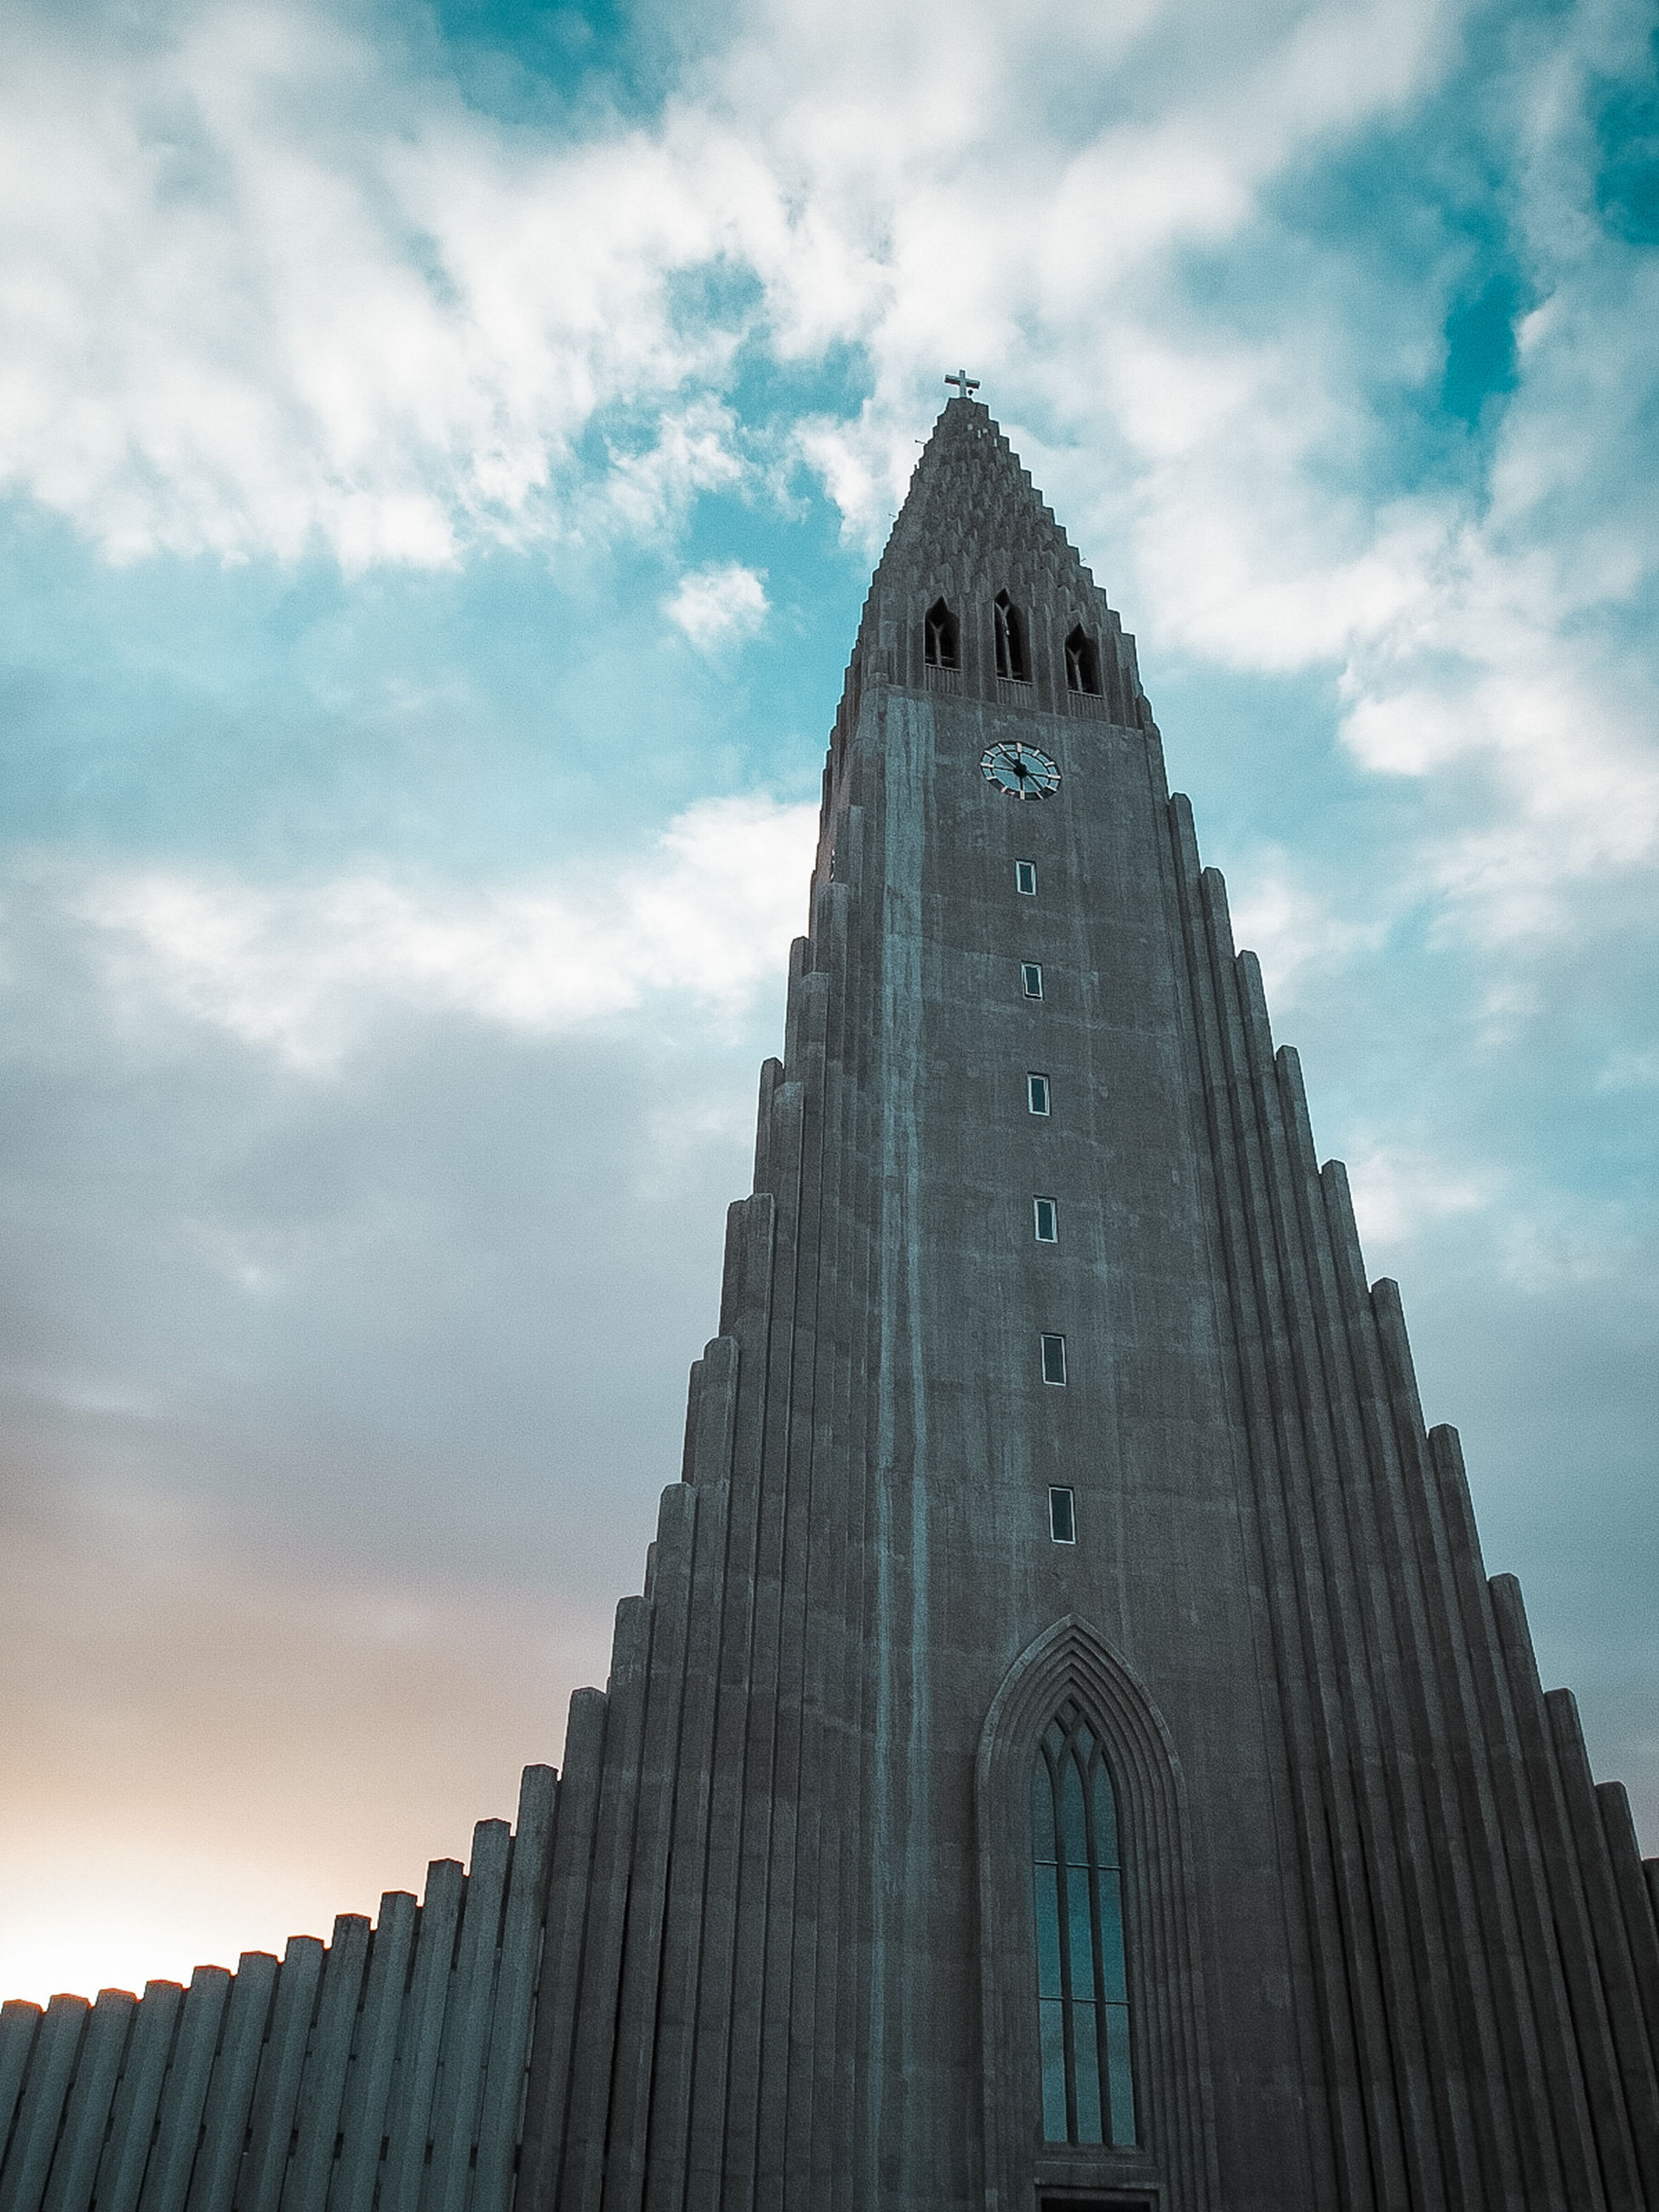 sky, architecture, cloud - sky, low angle view, built structure, building exterior, building, belief, religion, spirituality, place of worship, nature, tower, tall - high, travel destinations, no people, city, outdoors, office building exterior, skyscraper, gothic style